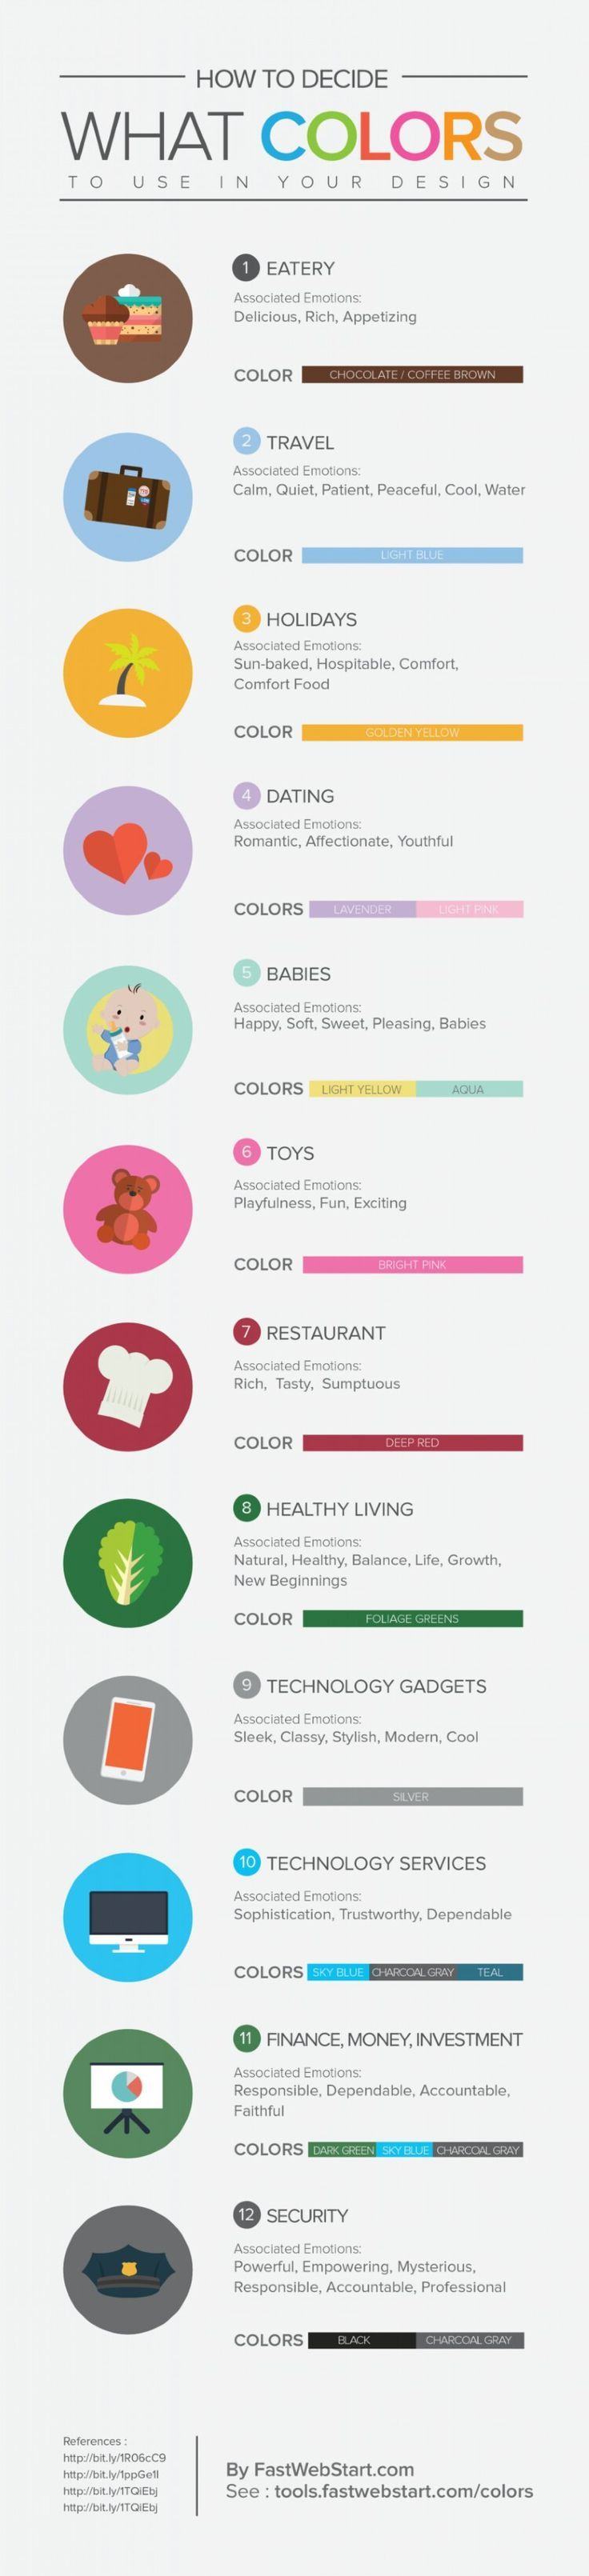 Bad design themen  best ux images on pinterest  graph design advertising and chart